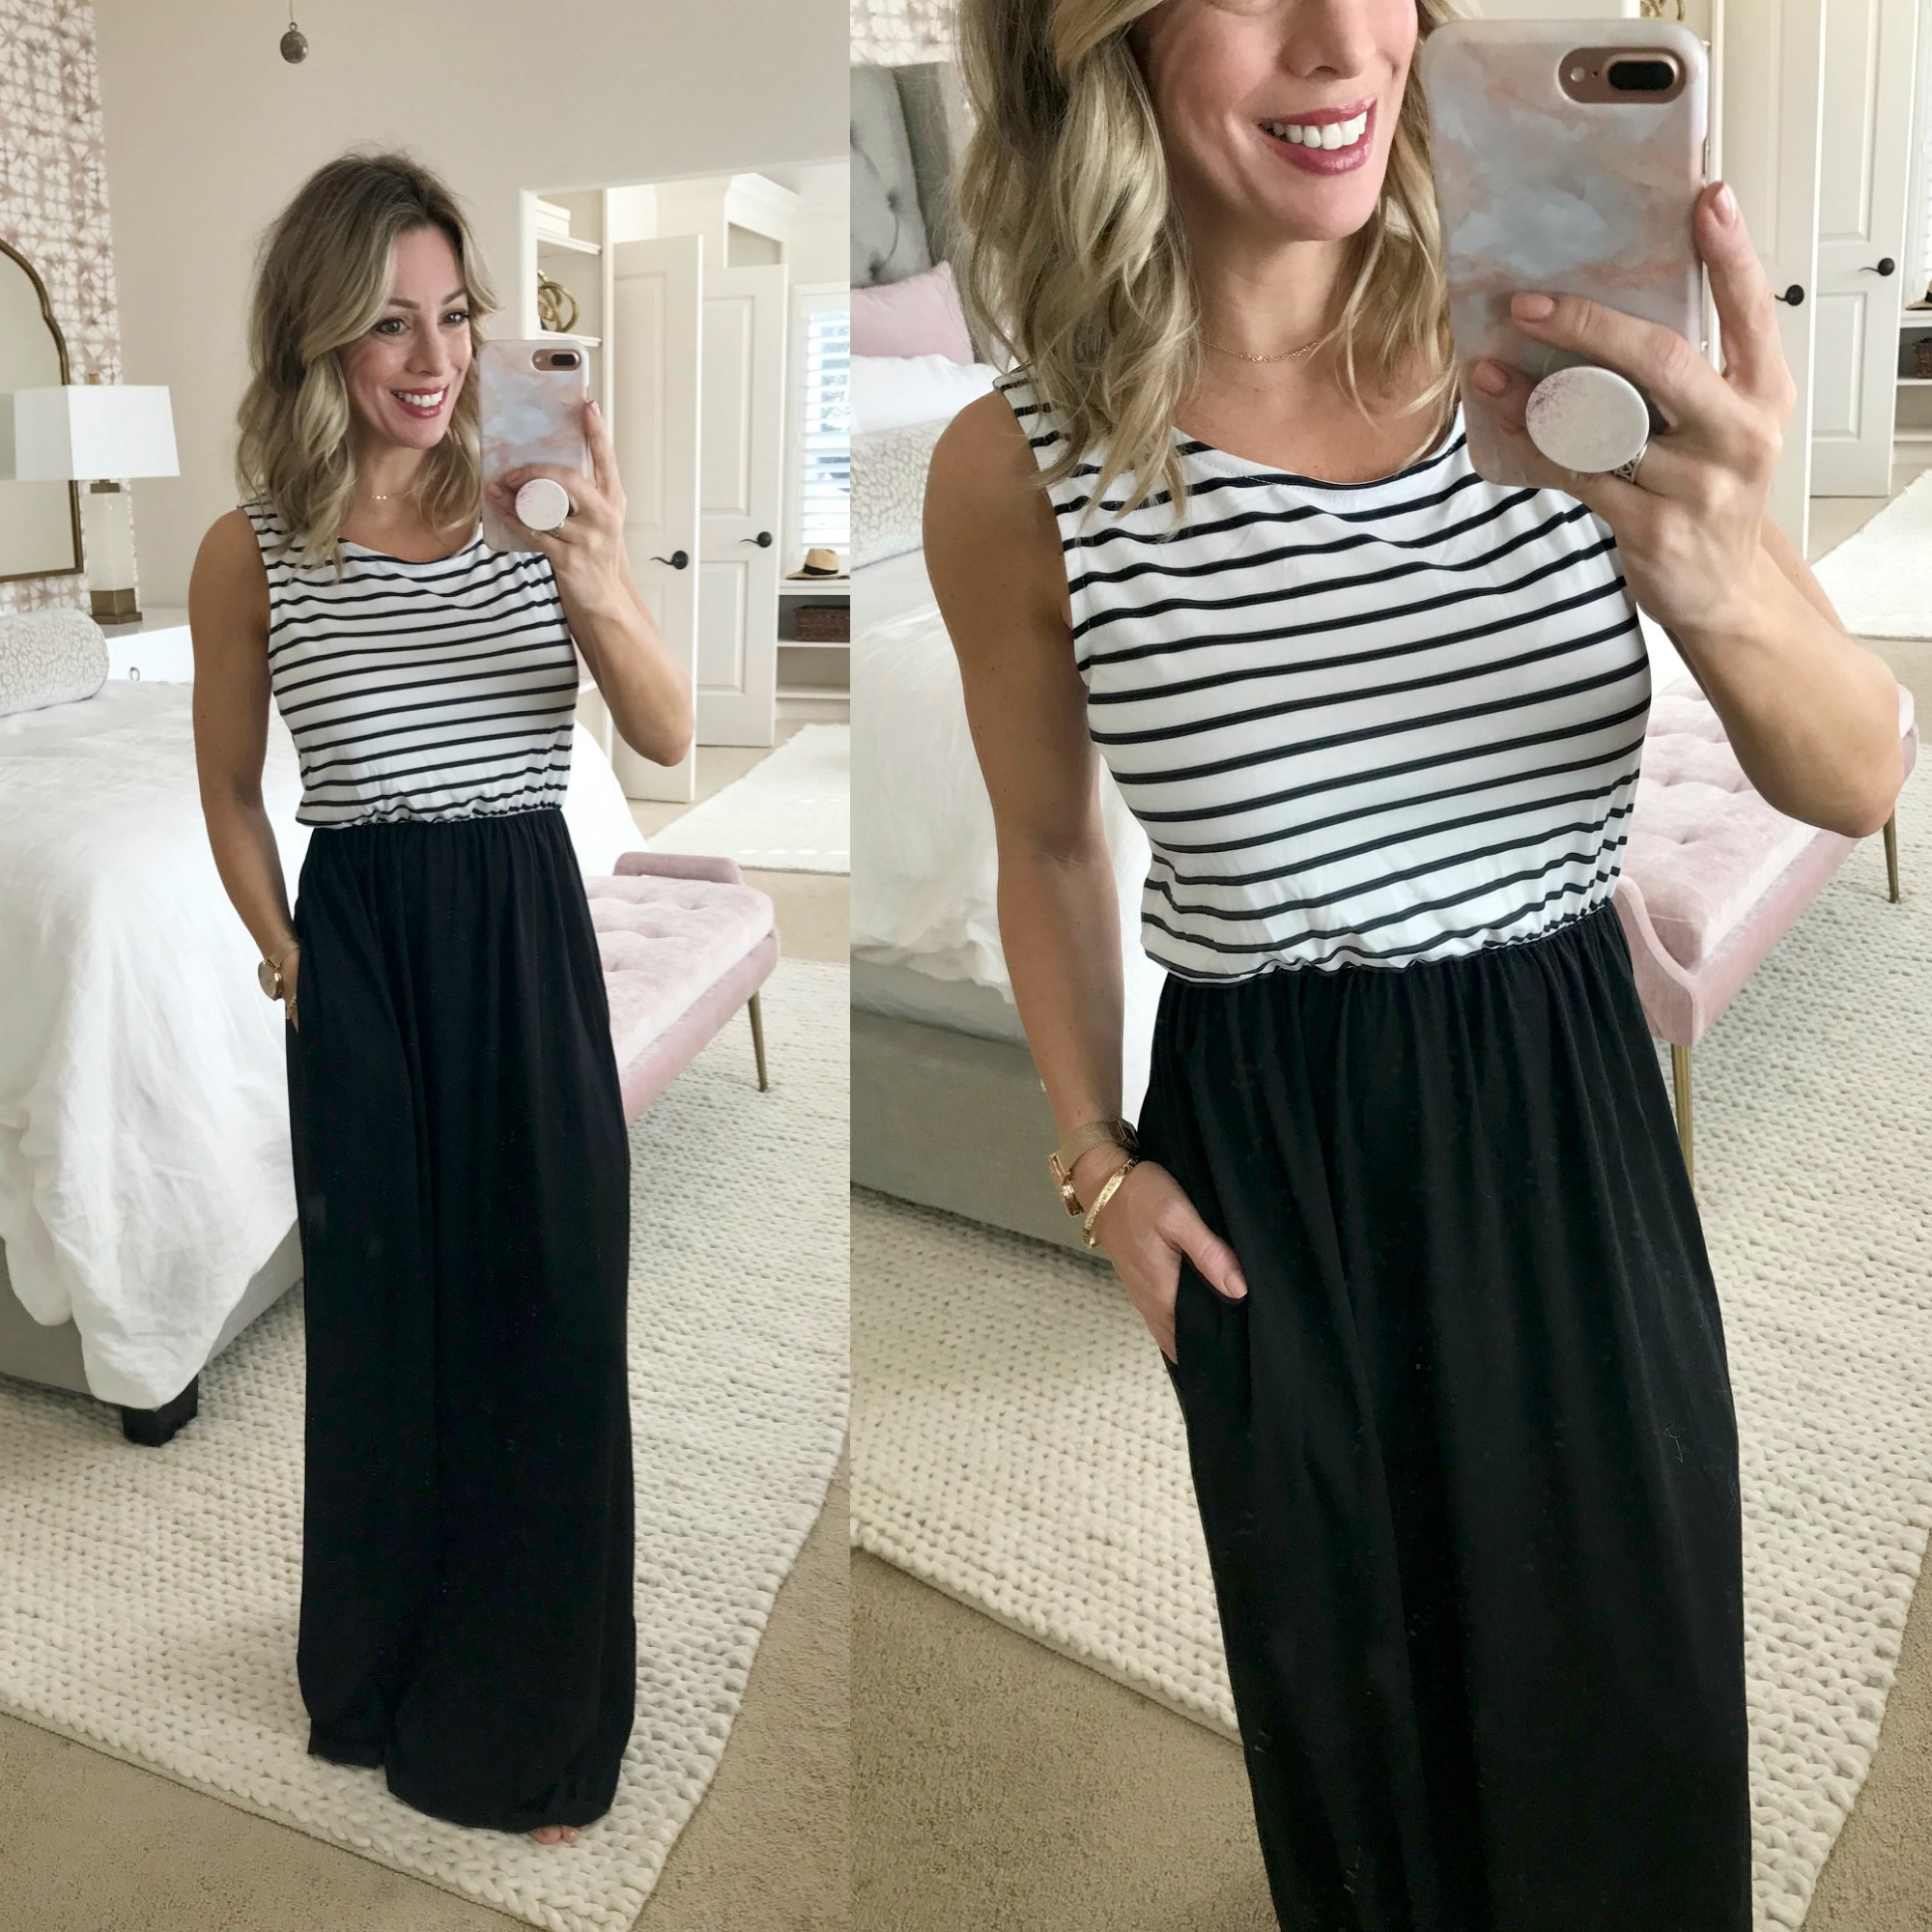 Amazon Fashion Haul - striped top maxi dress